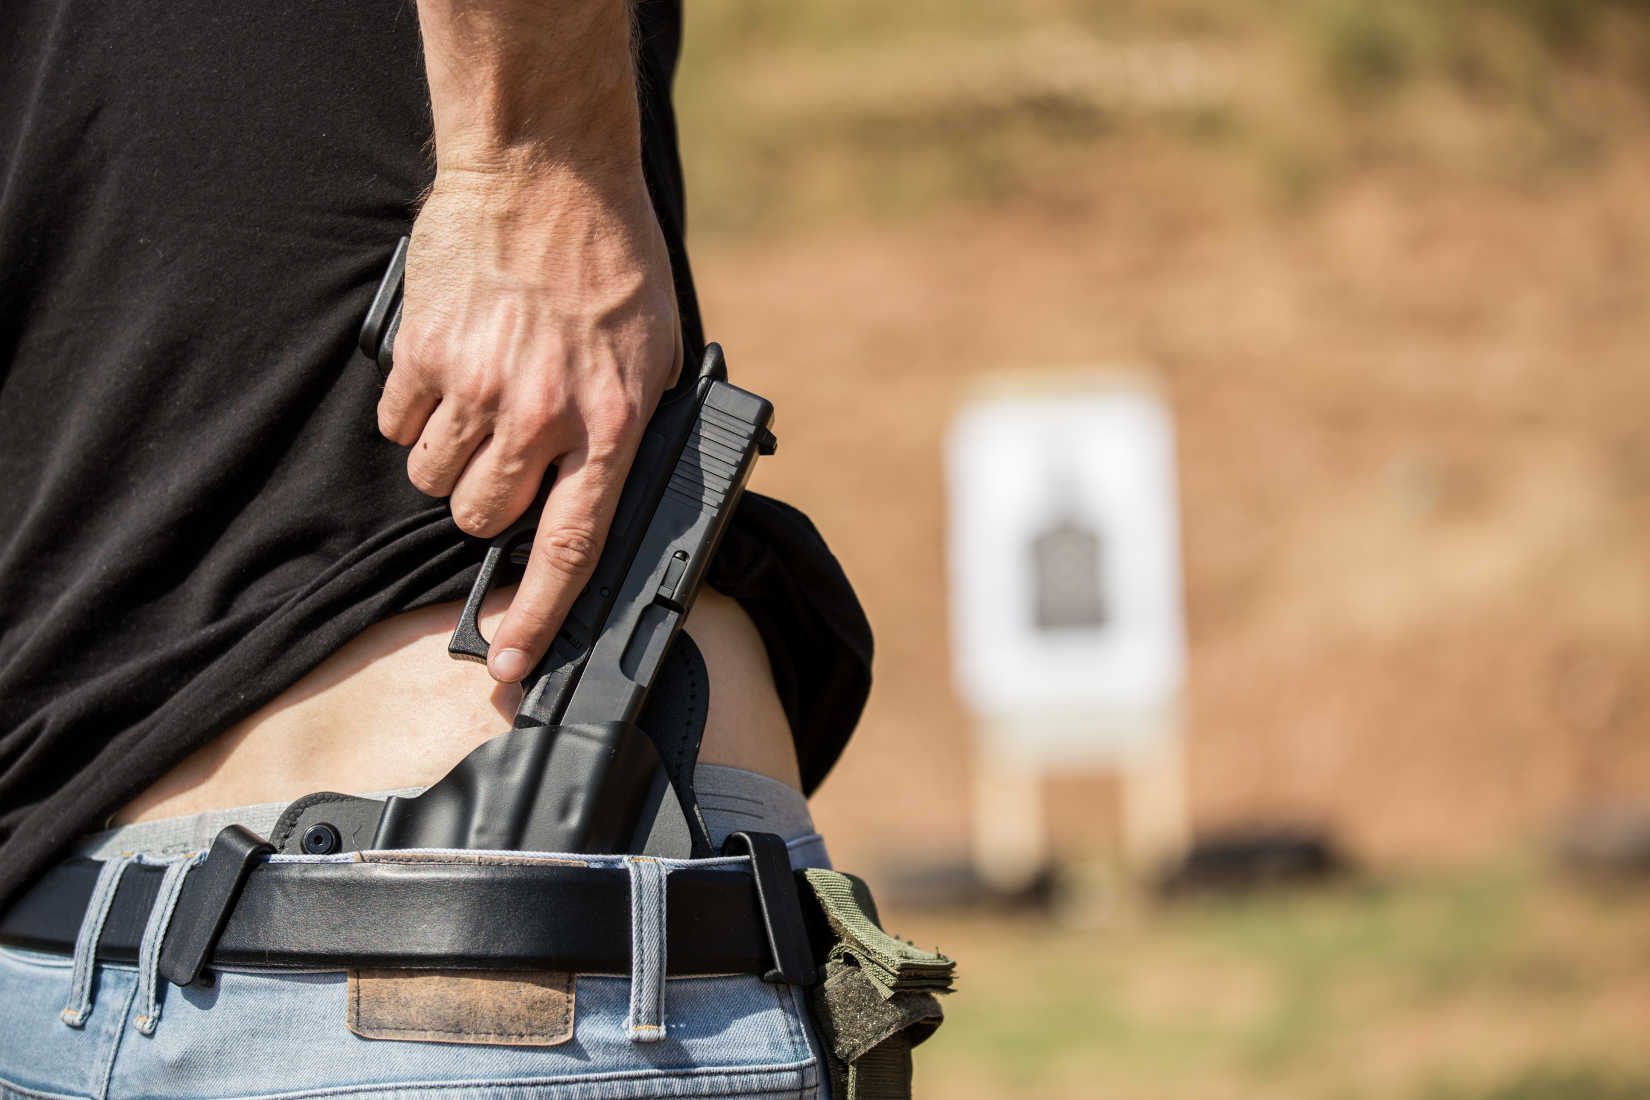 NJ Cops Sue State over Concealed Carry Rule